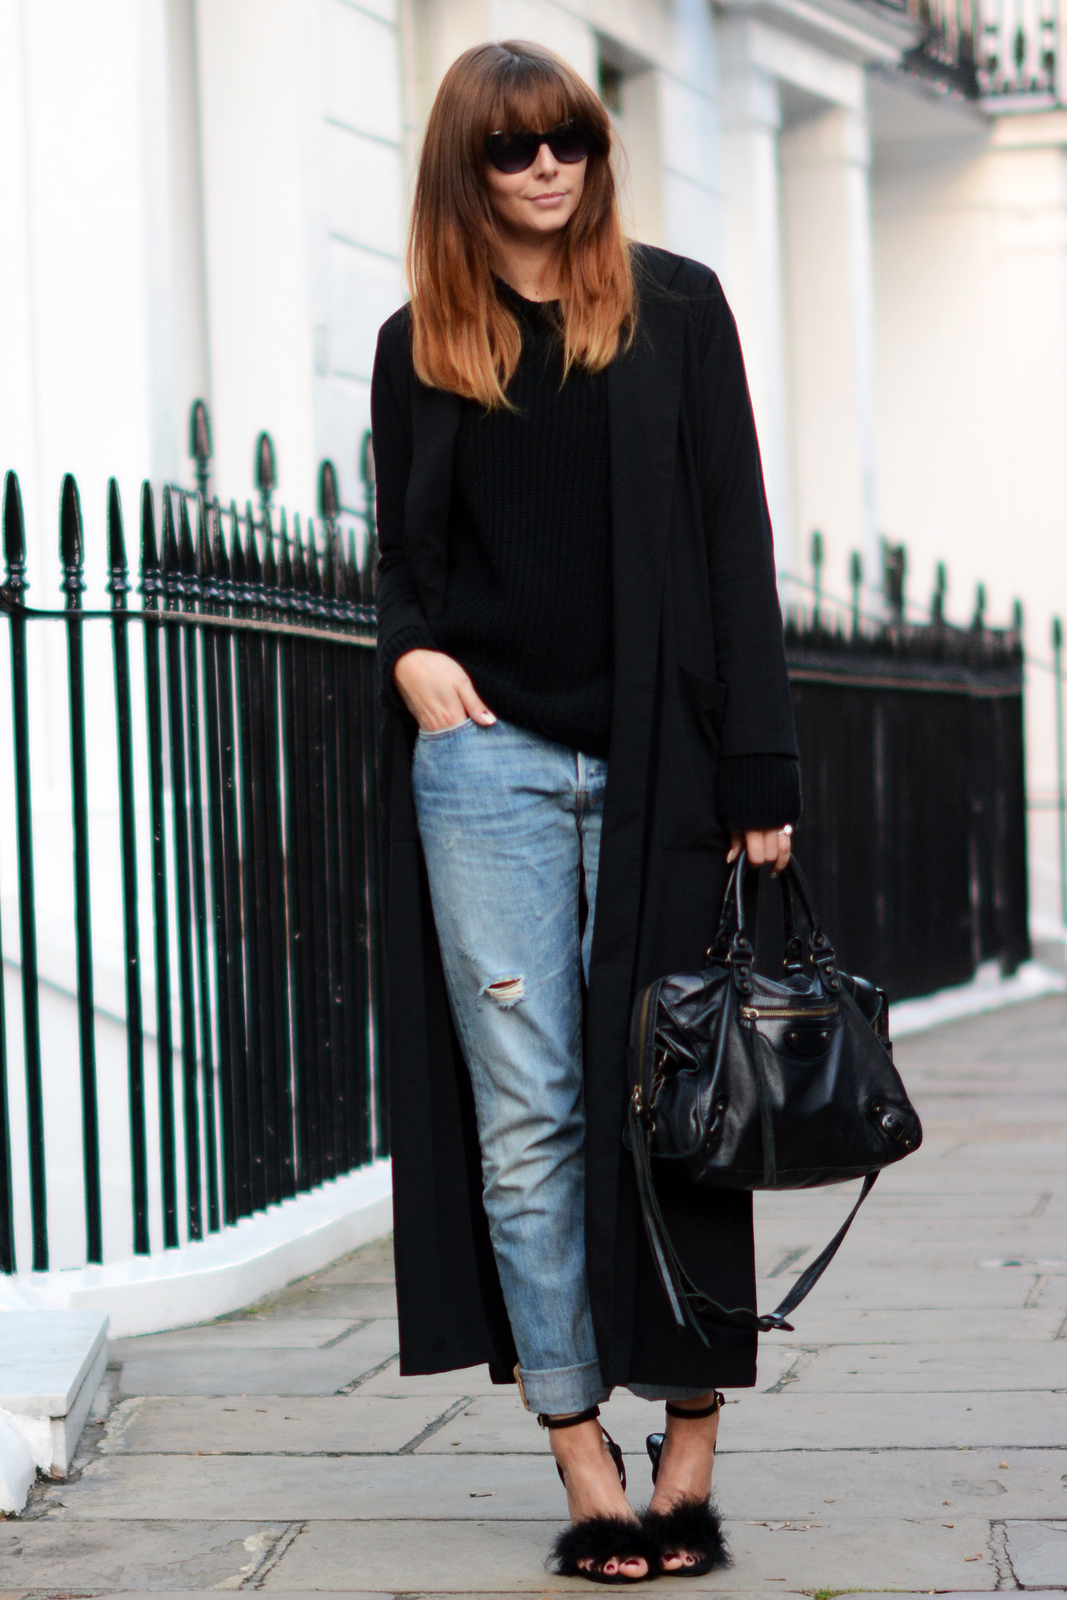 EJSTYLE - Long Black boohoo duster coat, levis 501 boyfriend jeans, Boohoo black funnel neck jumper, Missguided black fluffy feather Carrie heels sandals, Balenciaga motorcycle le dix city bag black